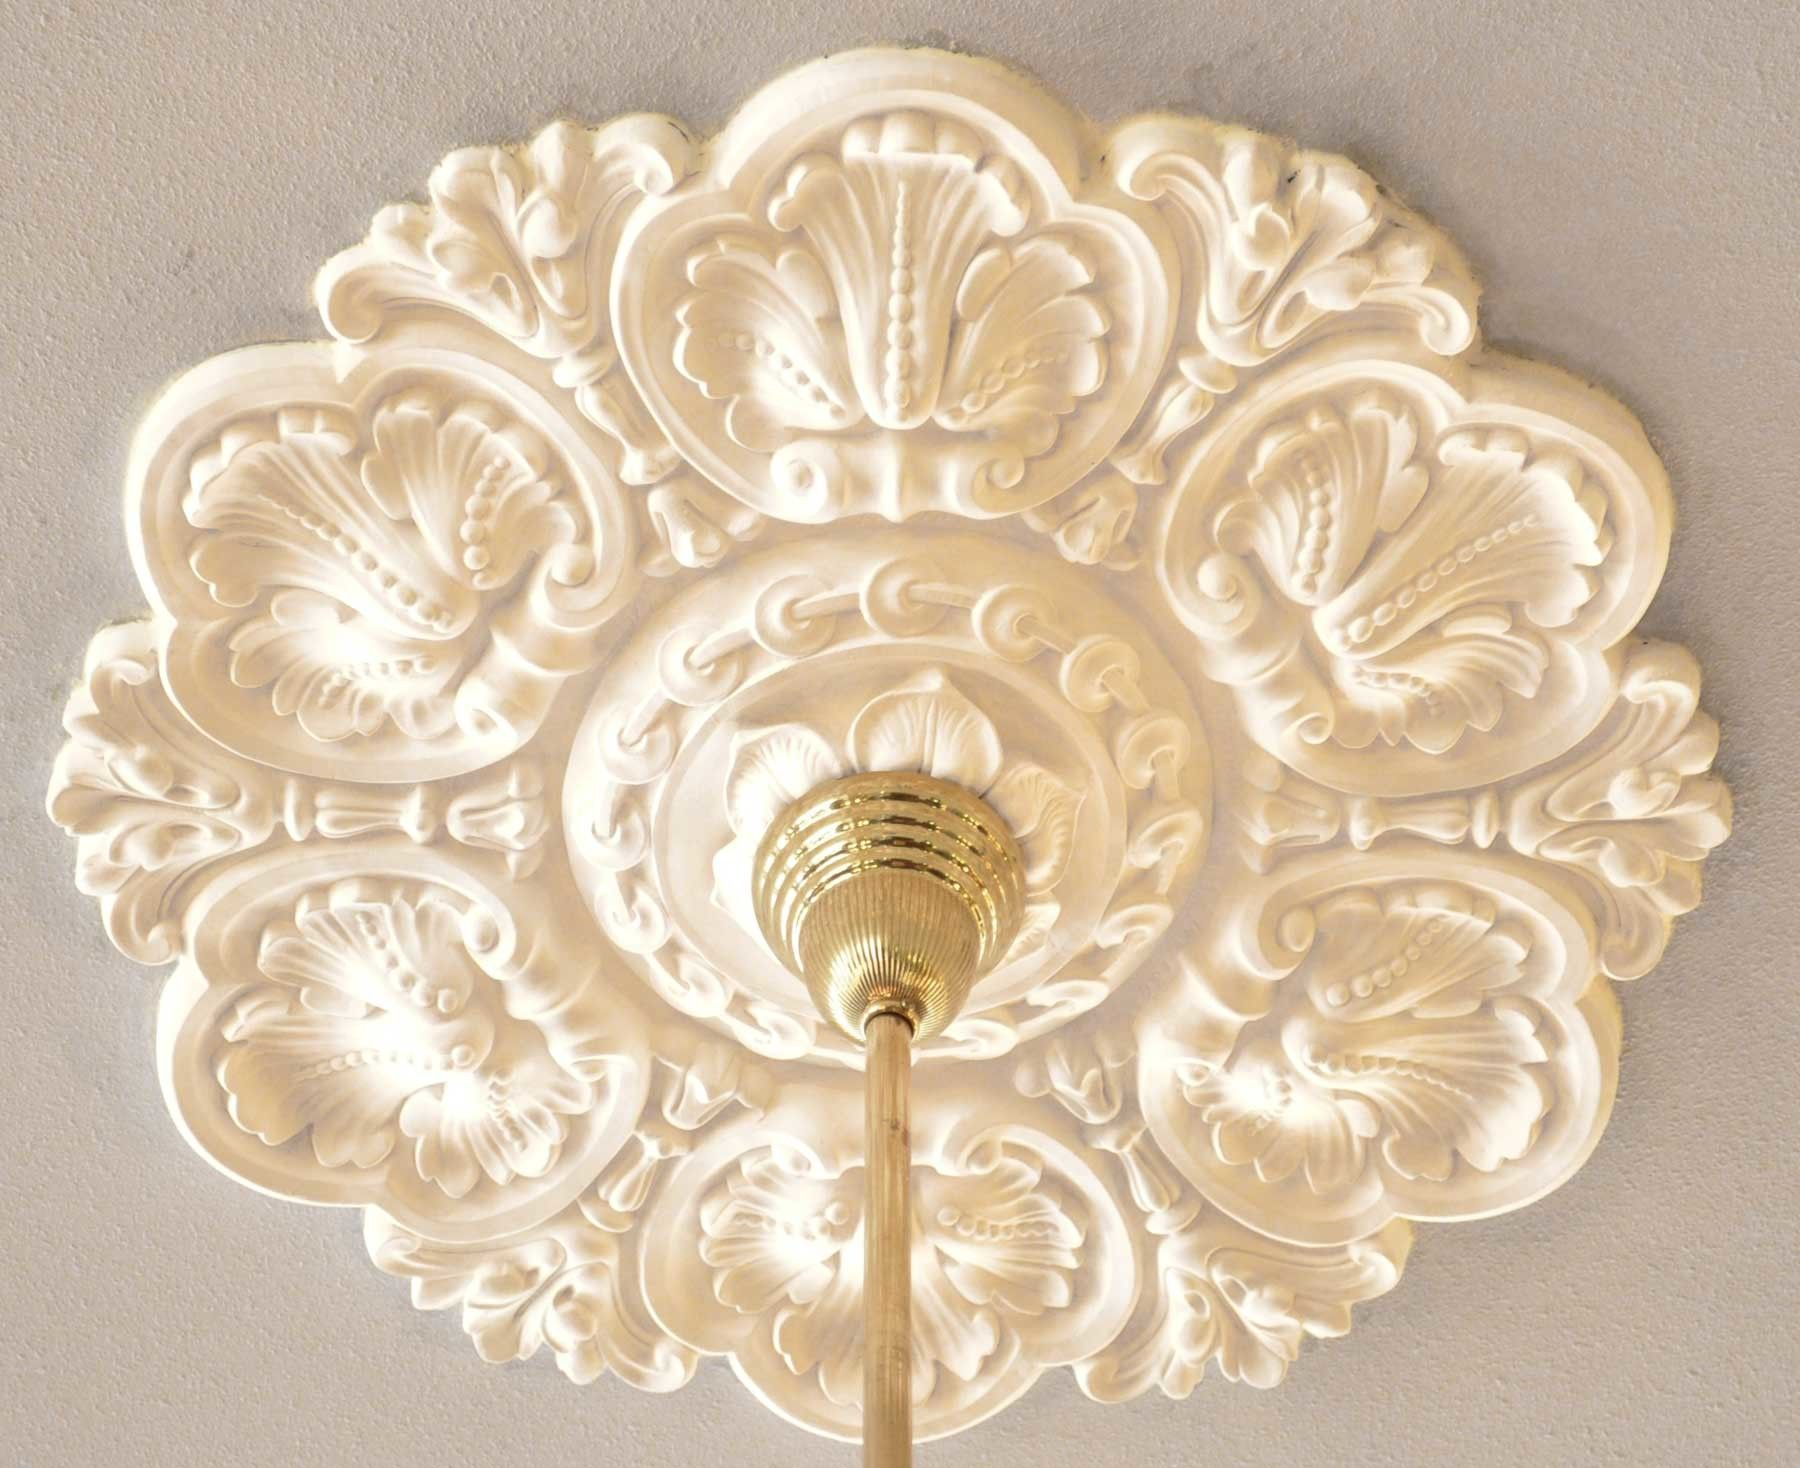 Recreated Acanthus 30 Inch Diameter Real Plaster Ceiling Medallion Zk 15